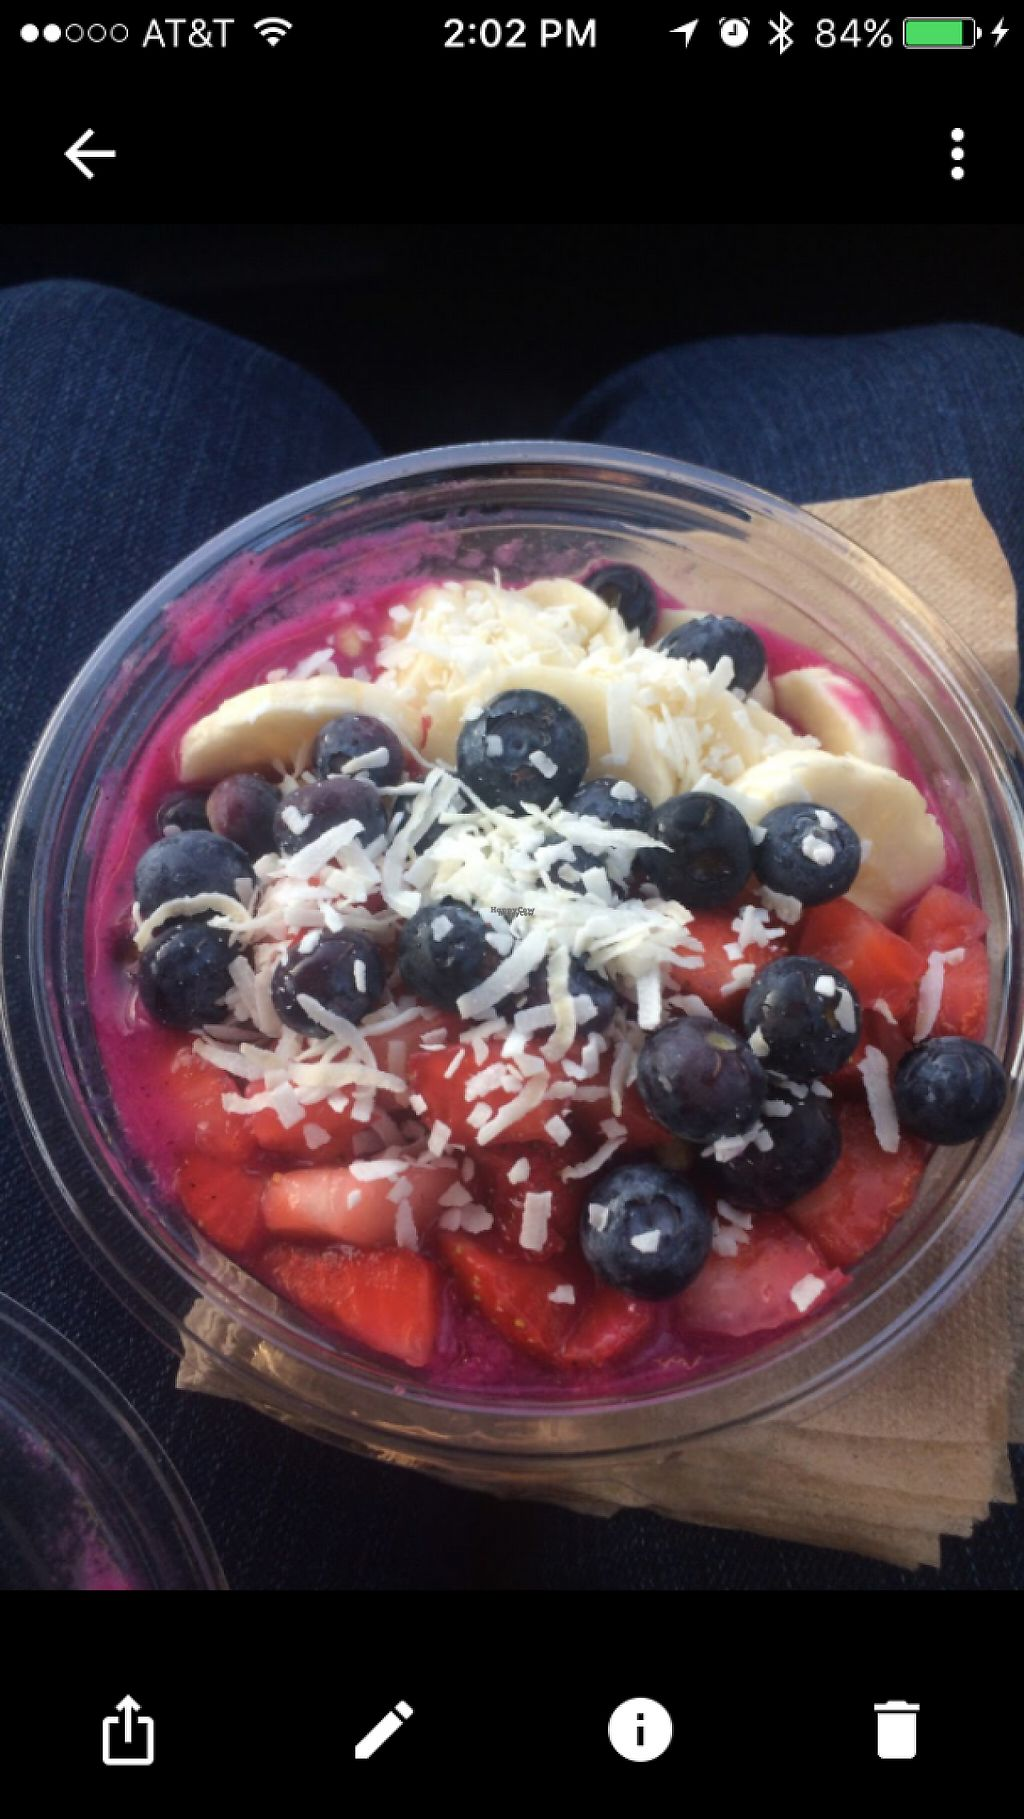 "Photo of Jamba Juice  by <a href=""/members/profile/glassesgirl79"">glassesgirl79</a> <br/>Acai bowl with blueberries, strawberries, bananas and shredded coconut  <br/> February 18, 2017  - <a href='/contact/abuse/image/87293/227930'>Report</a>"